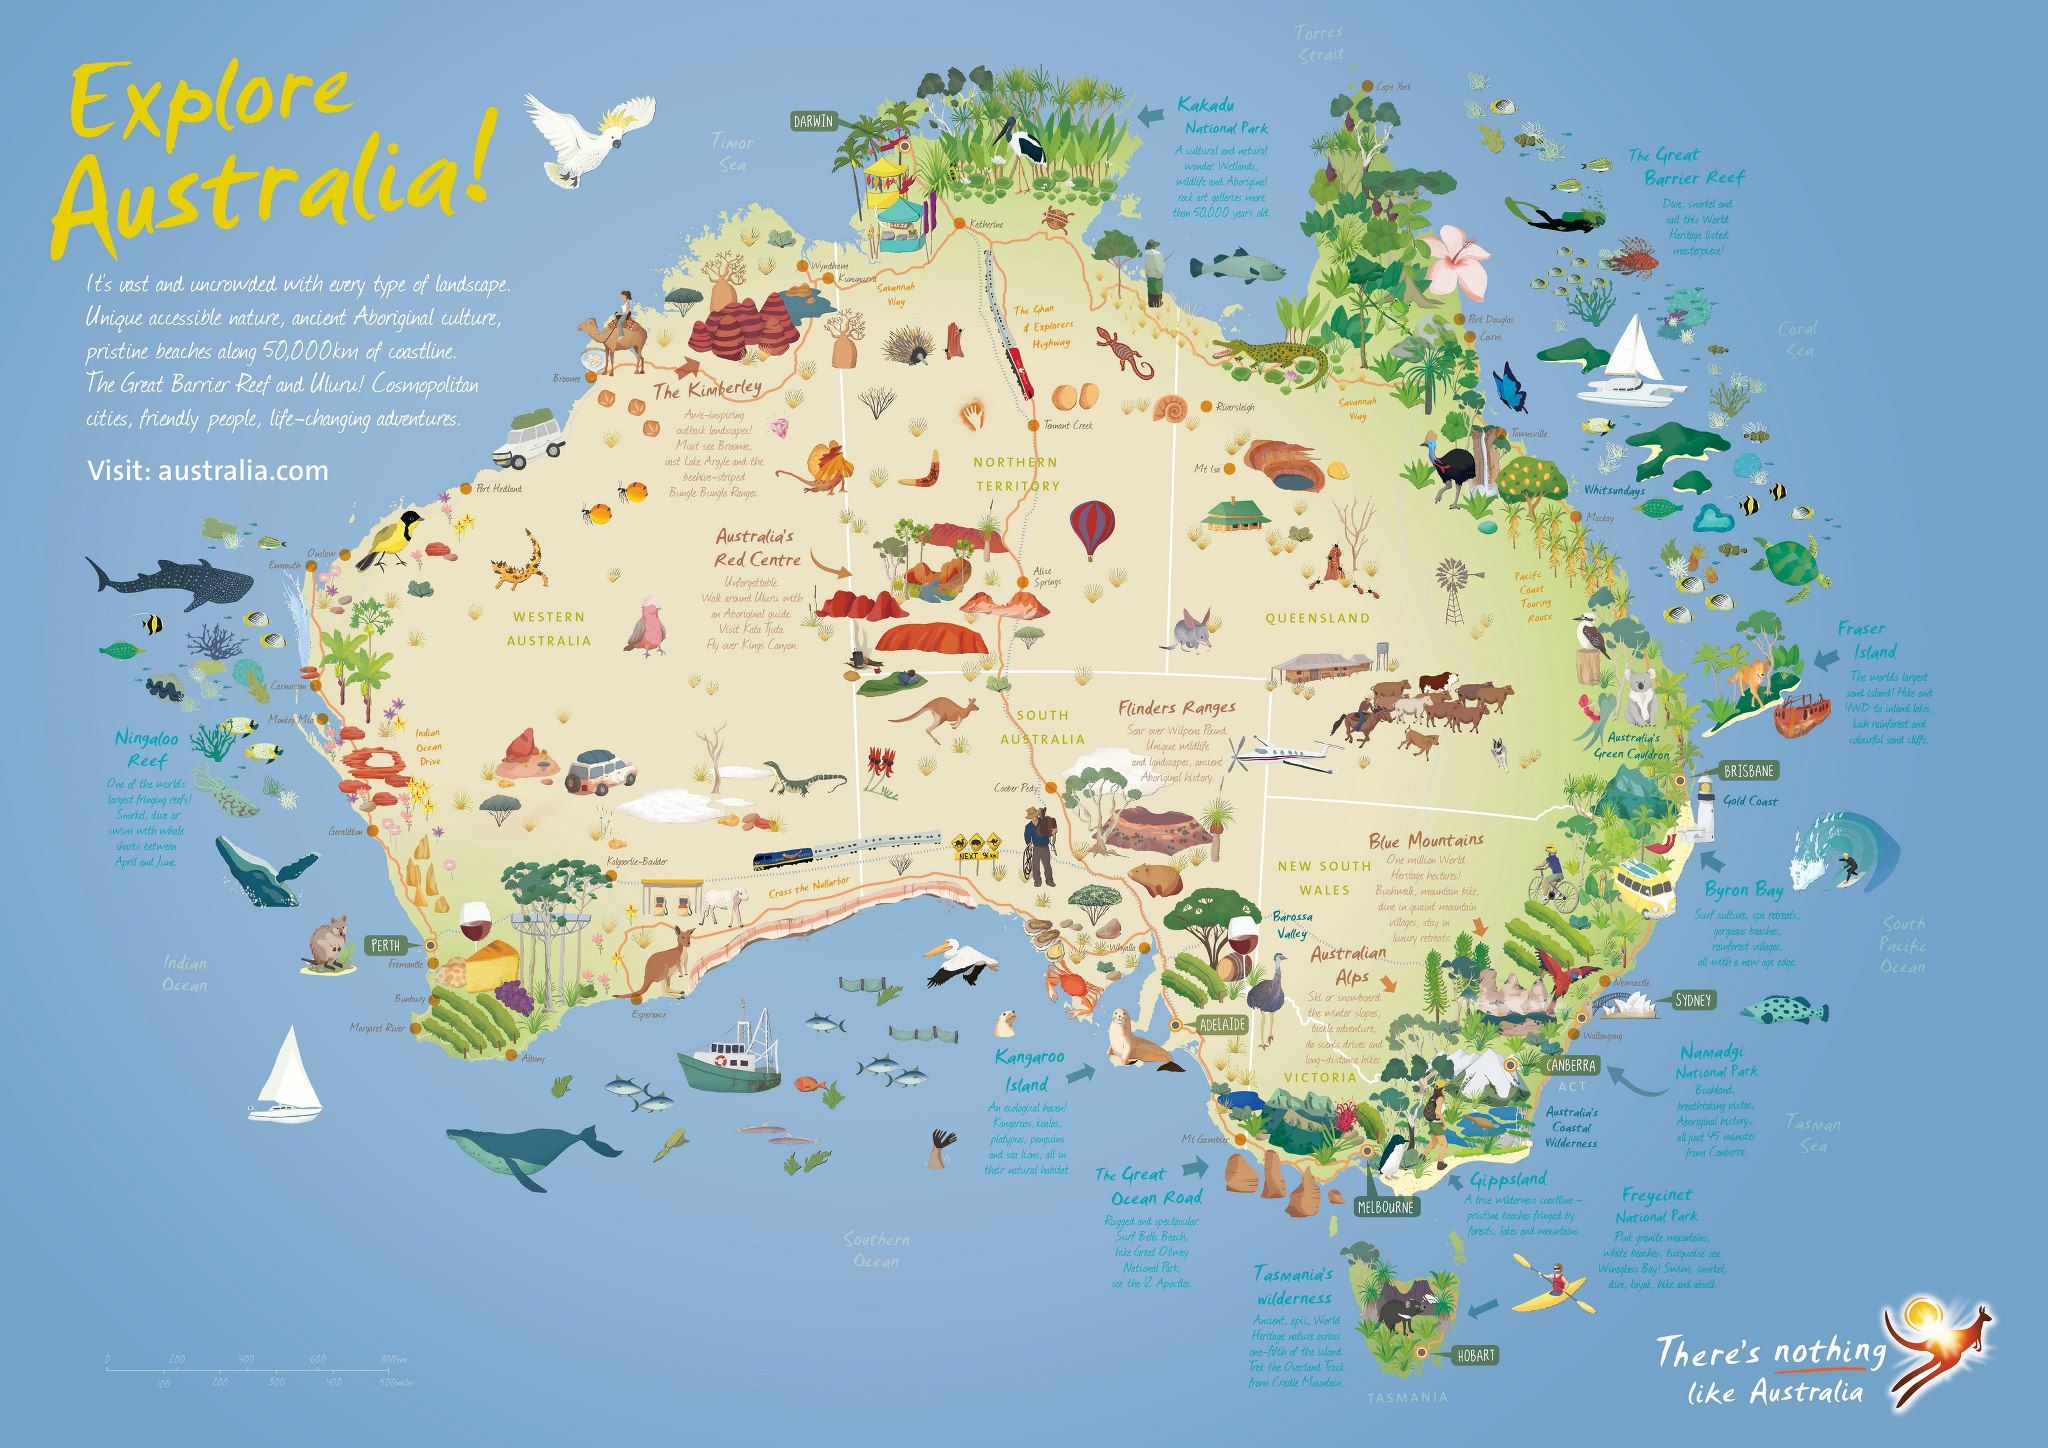 australia travel map showing key featuresattractions on the website it is possible to zoom right into areas on the map